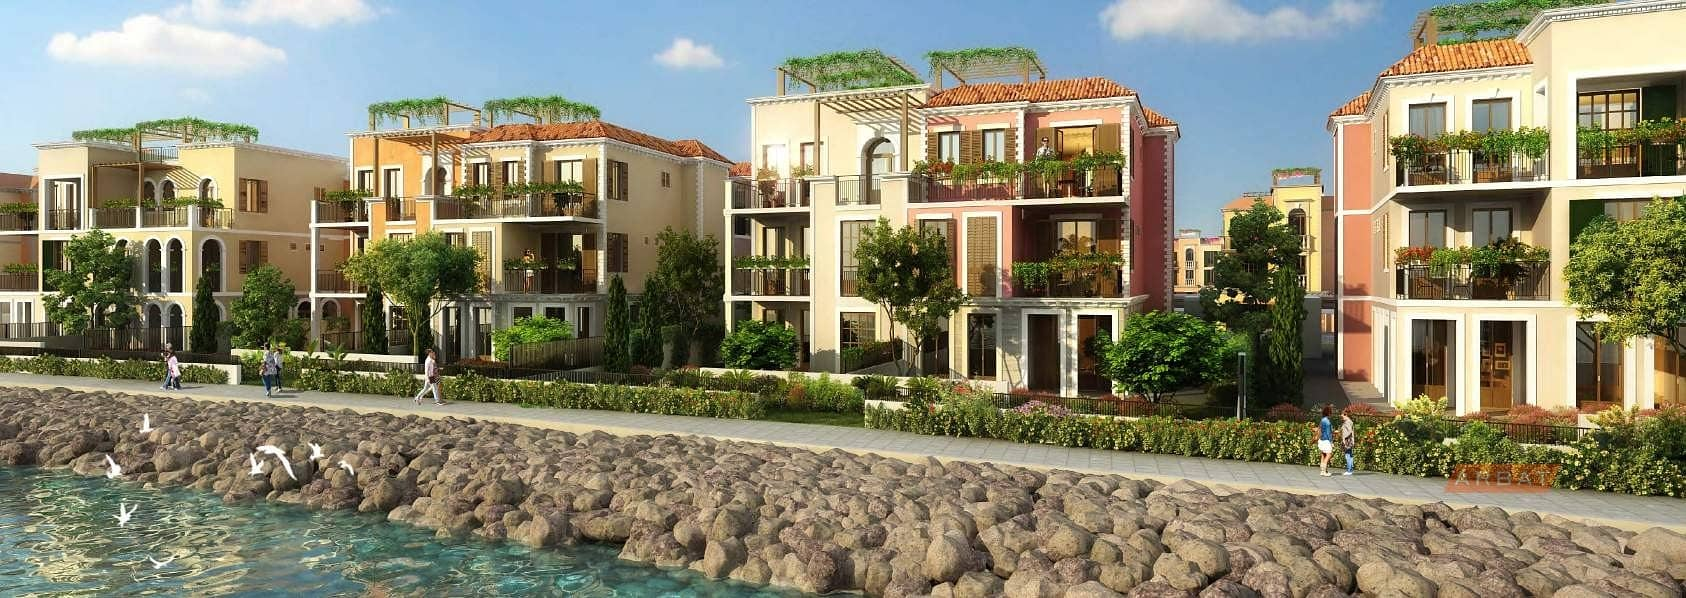 15 Townhouse  by the beach